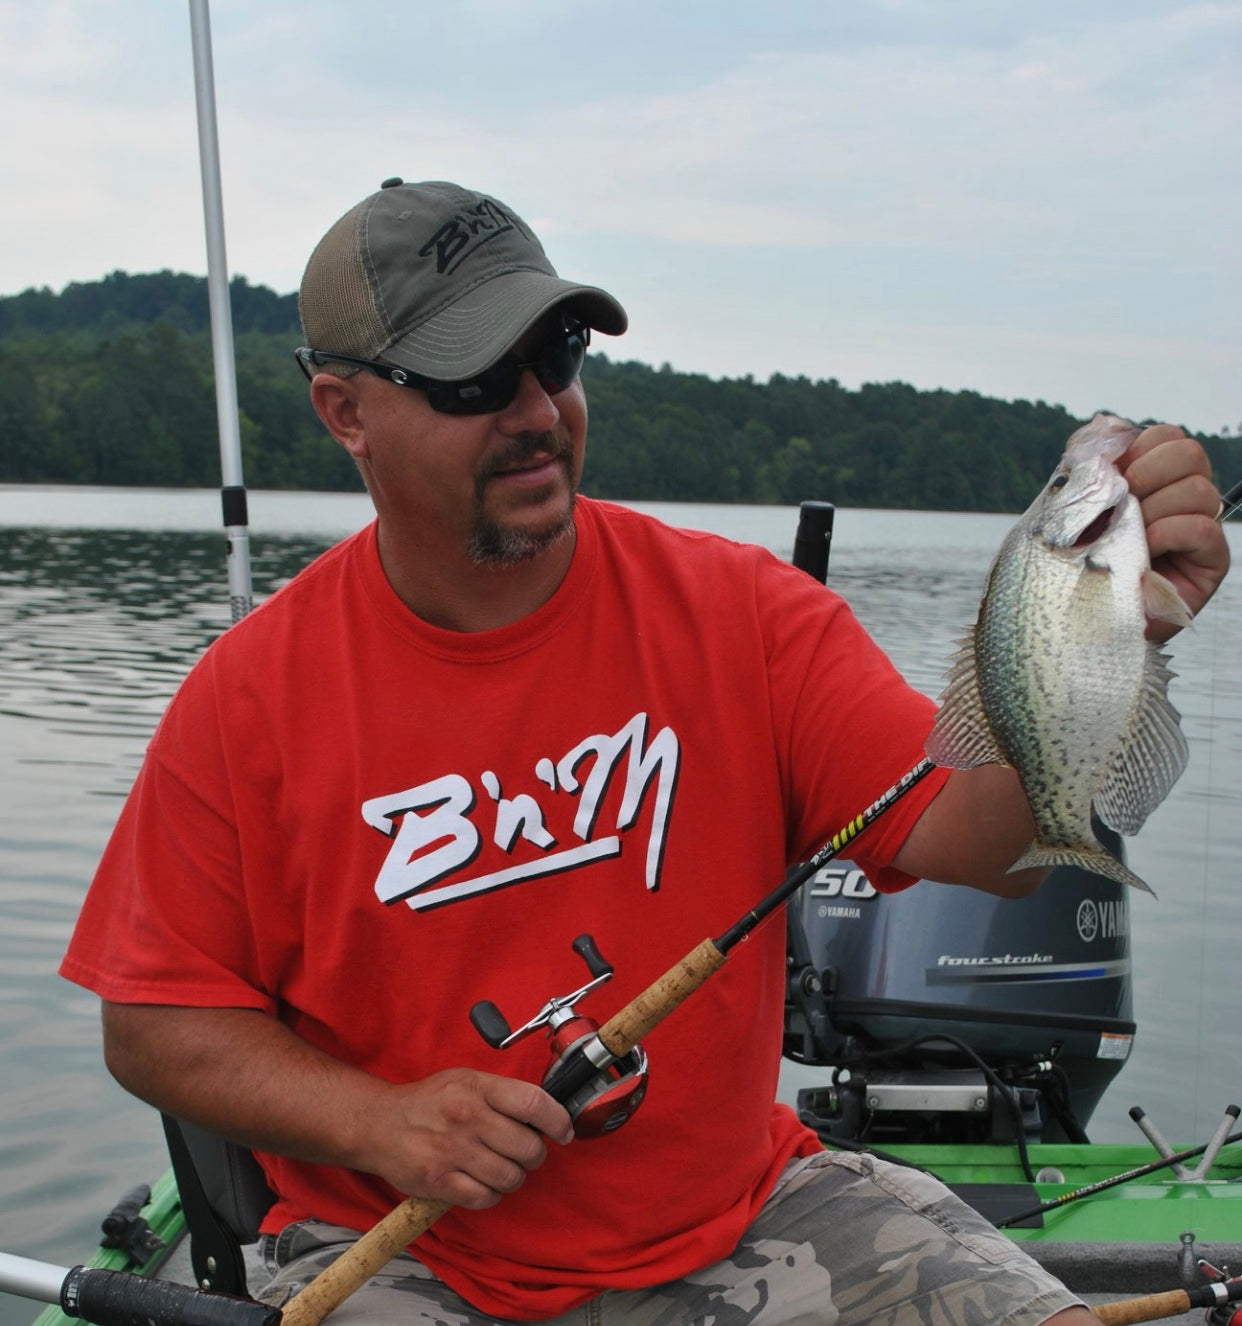 Brad Whitehead on Comparing Fall Crappie Fishing to Spring Crappie Fishing